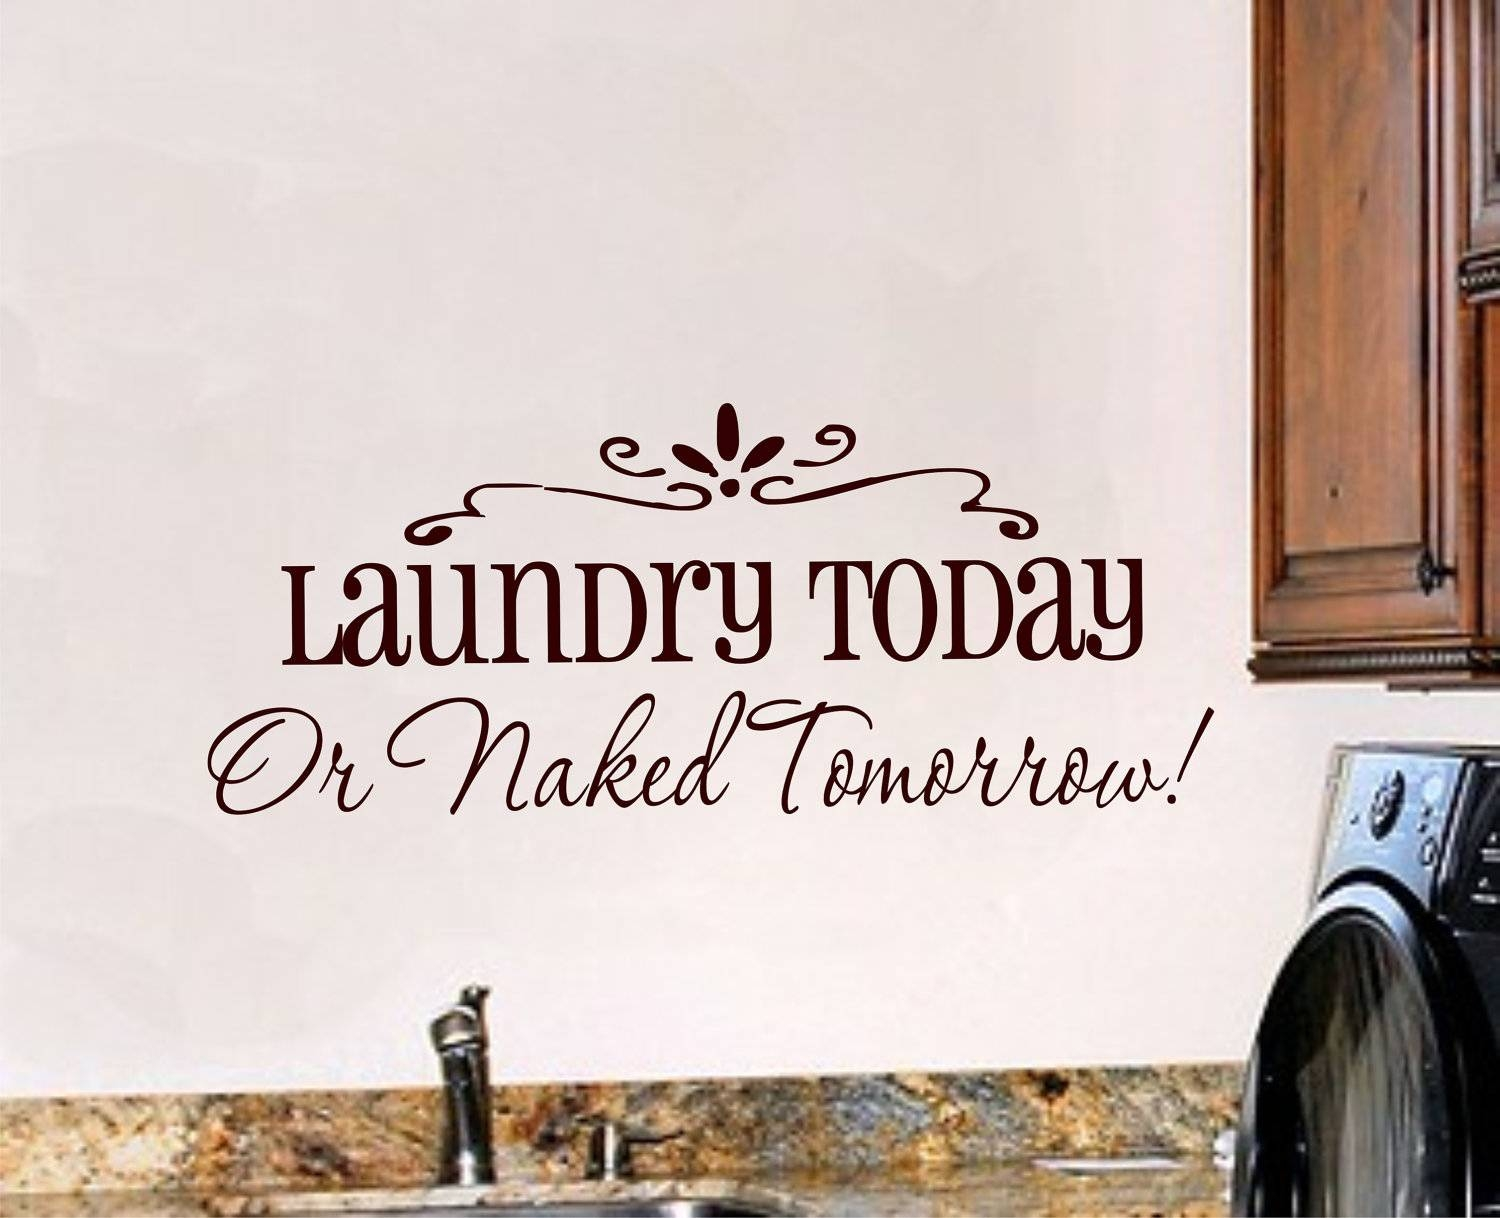 Laundry Room Wall Decal Laundry Room Decor Vinyl Wall Art Pertaining To Most Recent Laundry Room Wall Art (View 18 of 30)